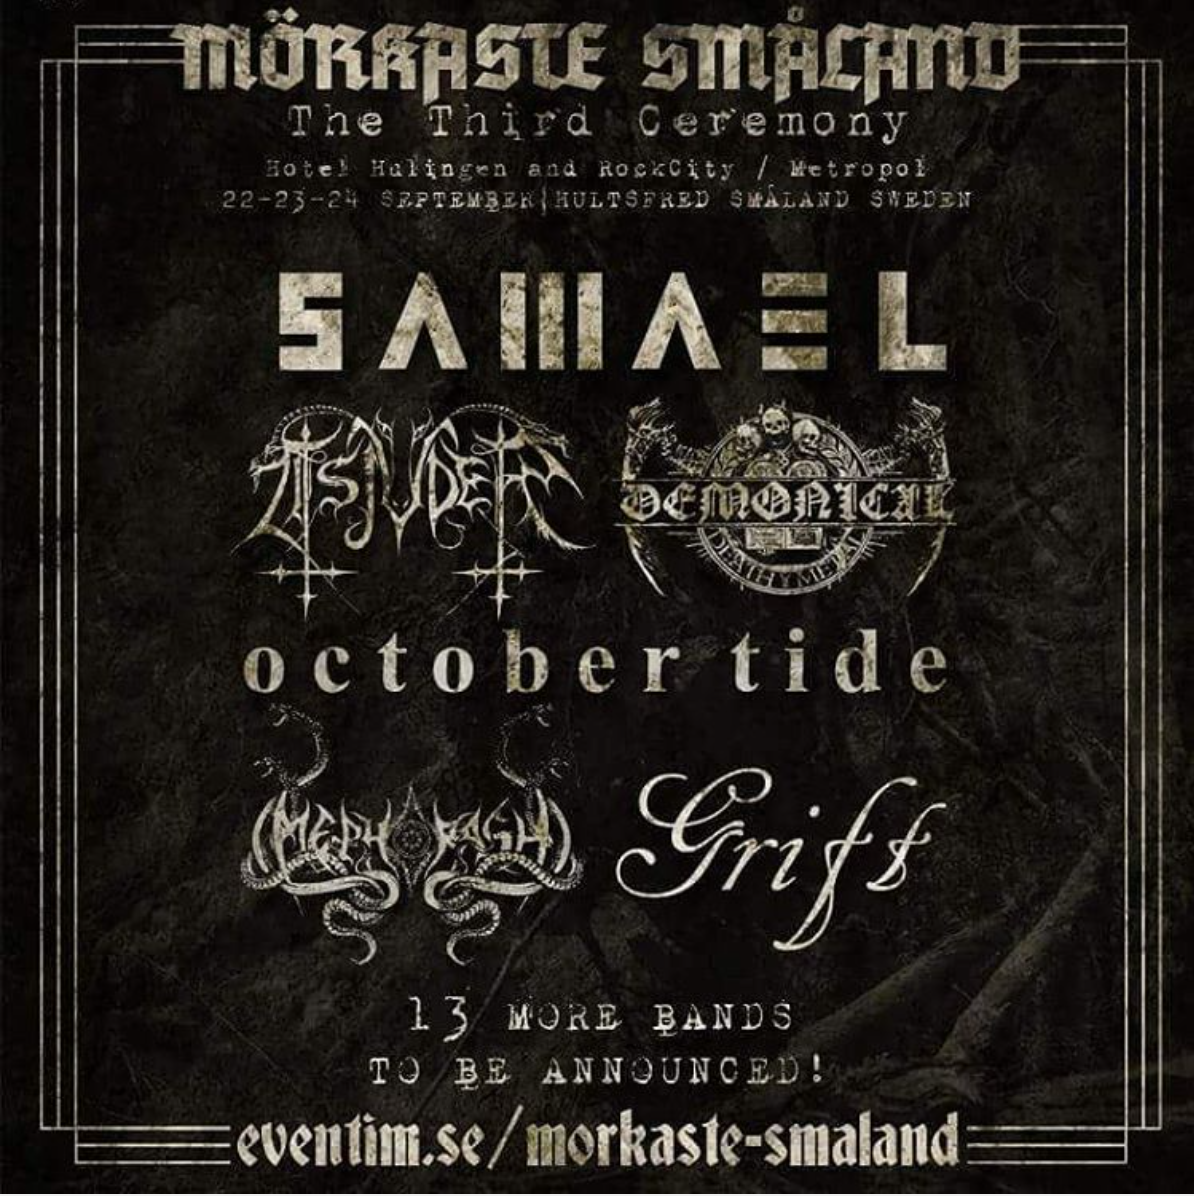 morkaste-smaland first bands